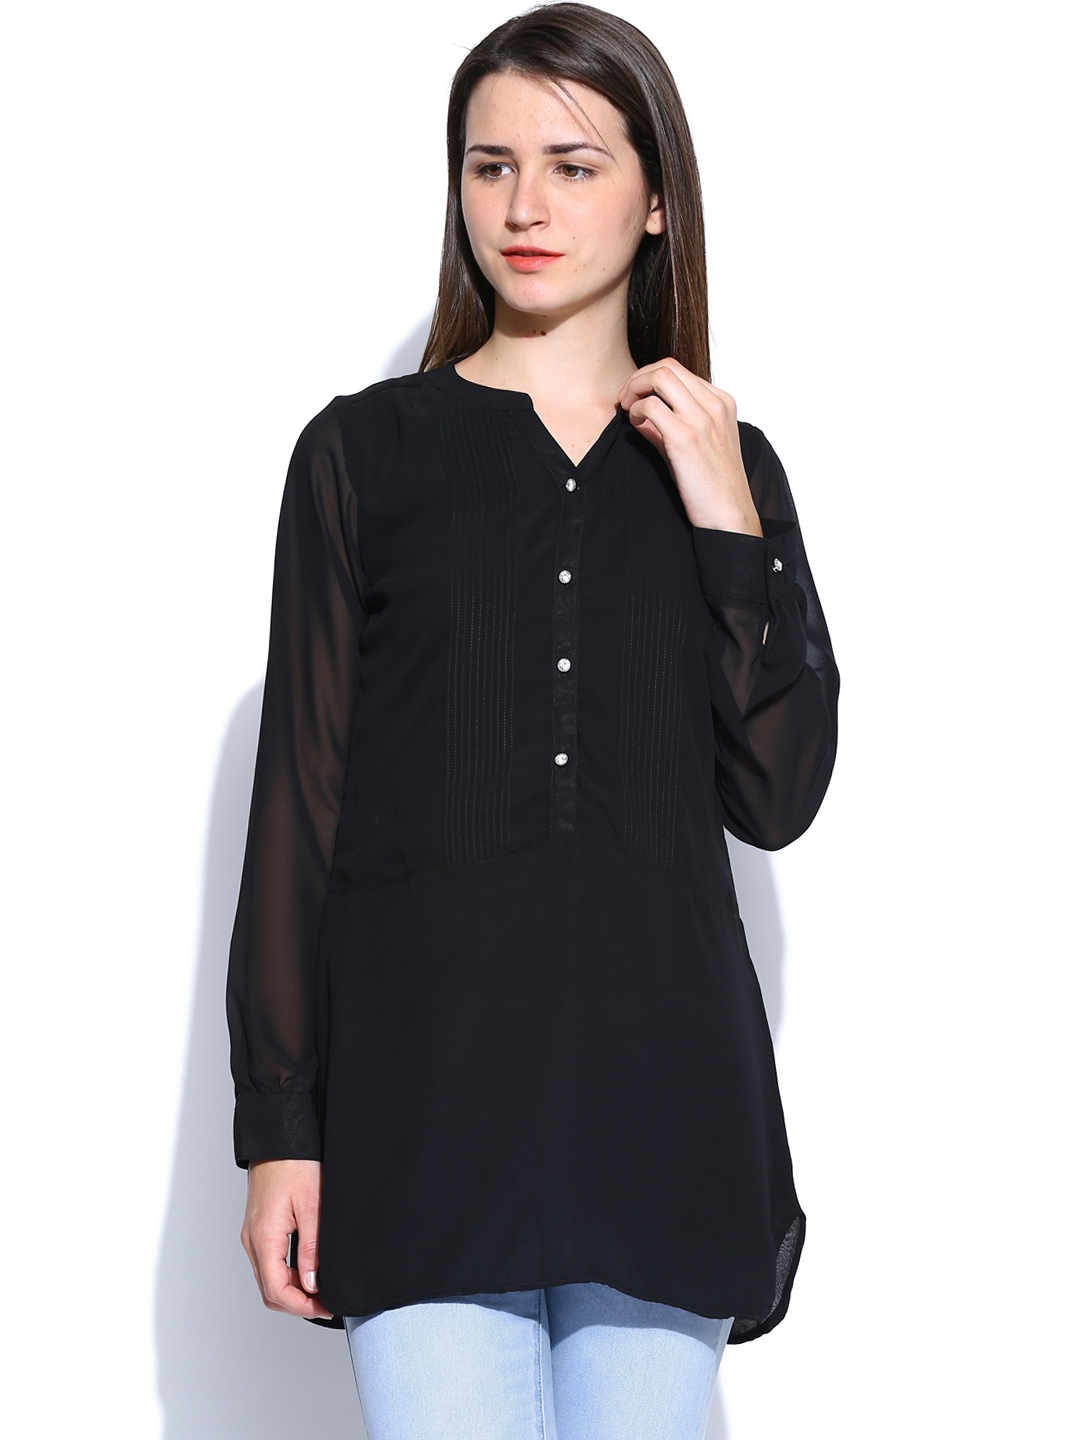 Tunic Long Sleeve Shirts: manakamanamobilecenter.tk - Your Online Tops Store! Get 5% in rewards with Club O!